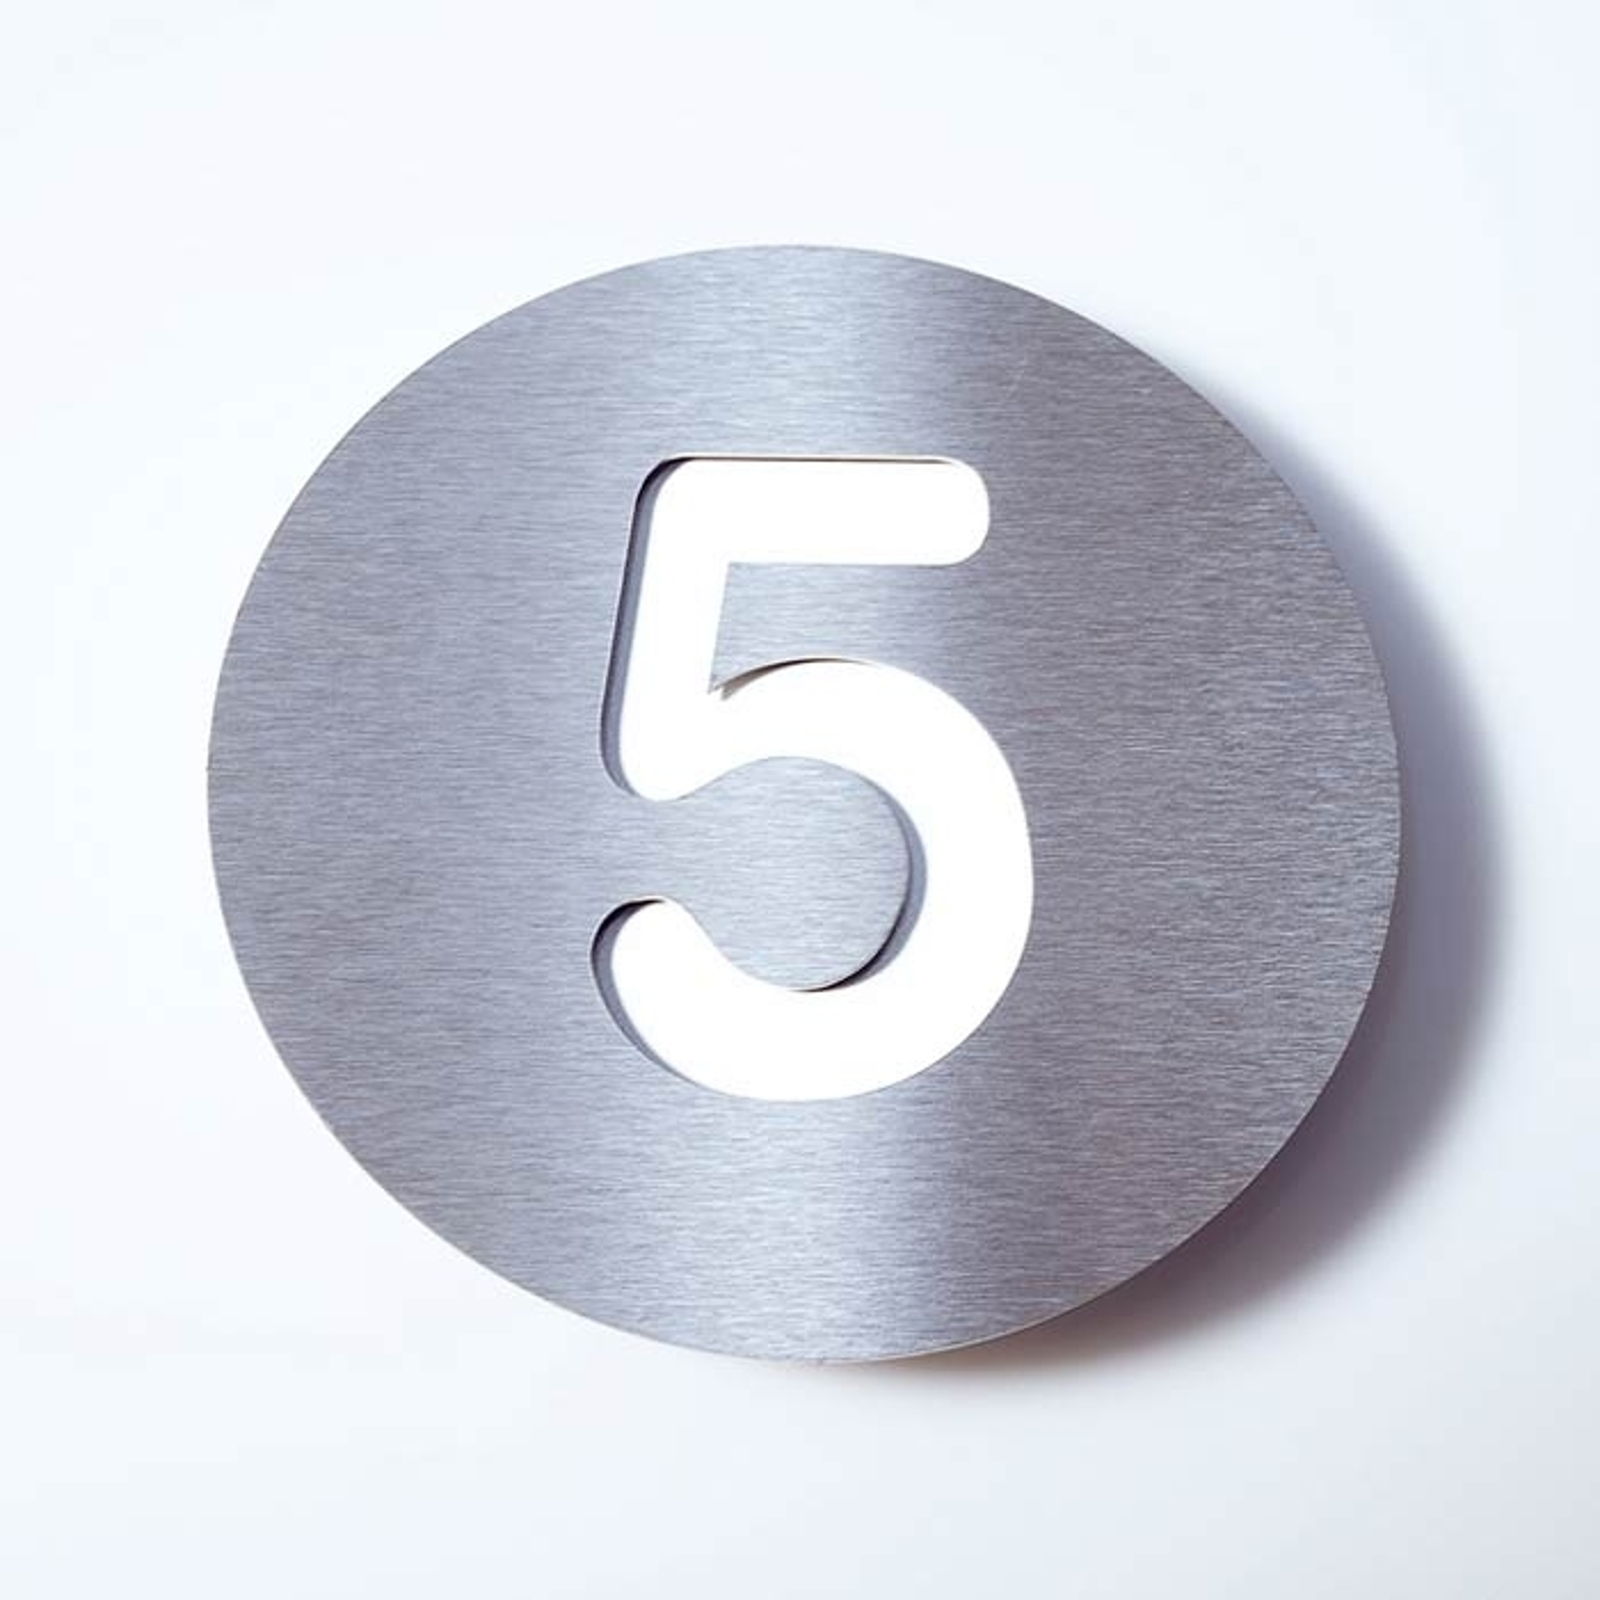 Stainless steel house number Round_1057083_1